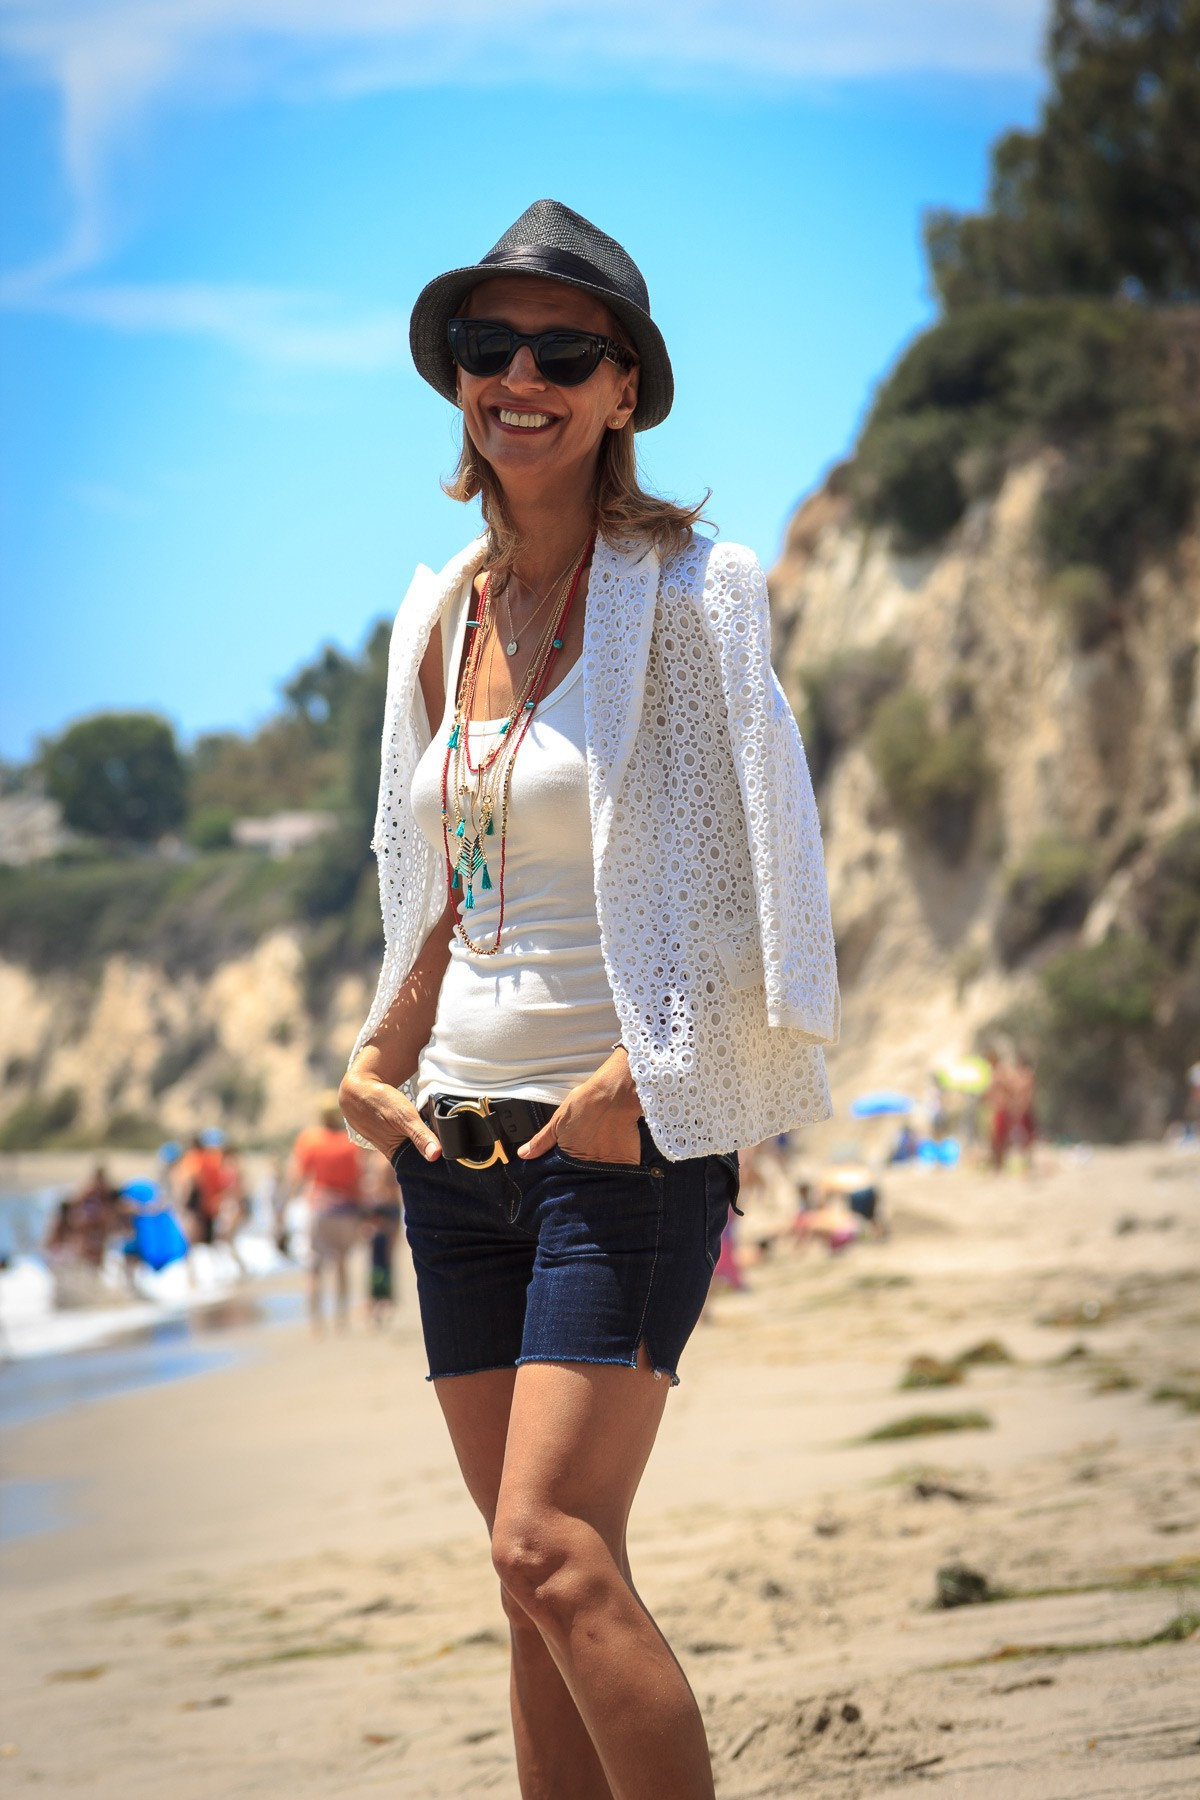 a-day-at-Paradise-Cove-beach-Malibu (5)